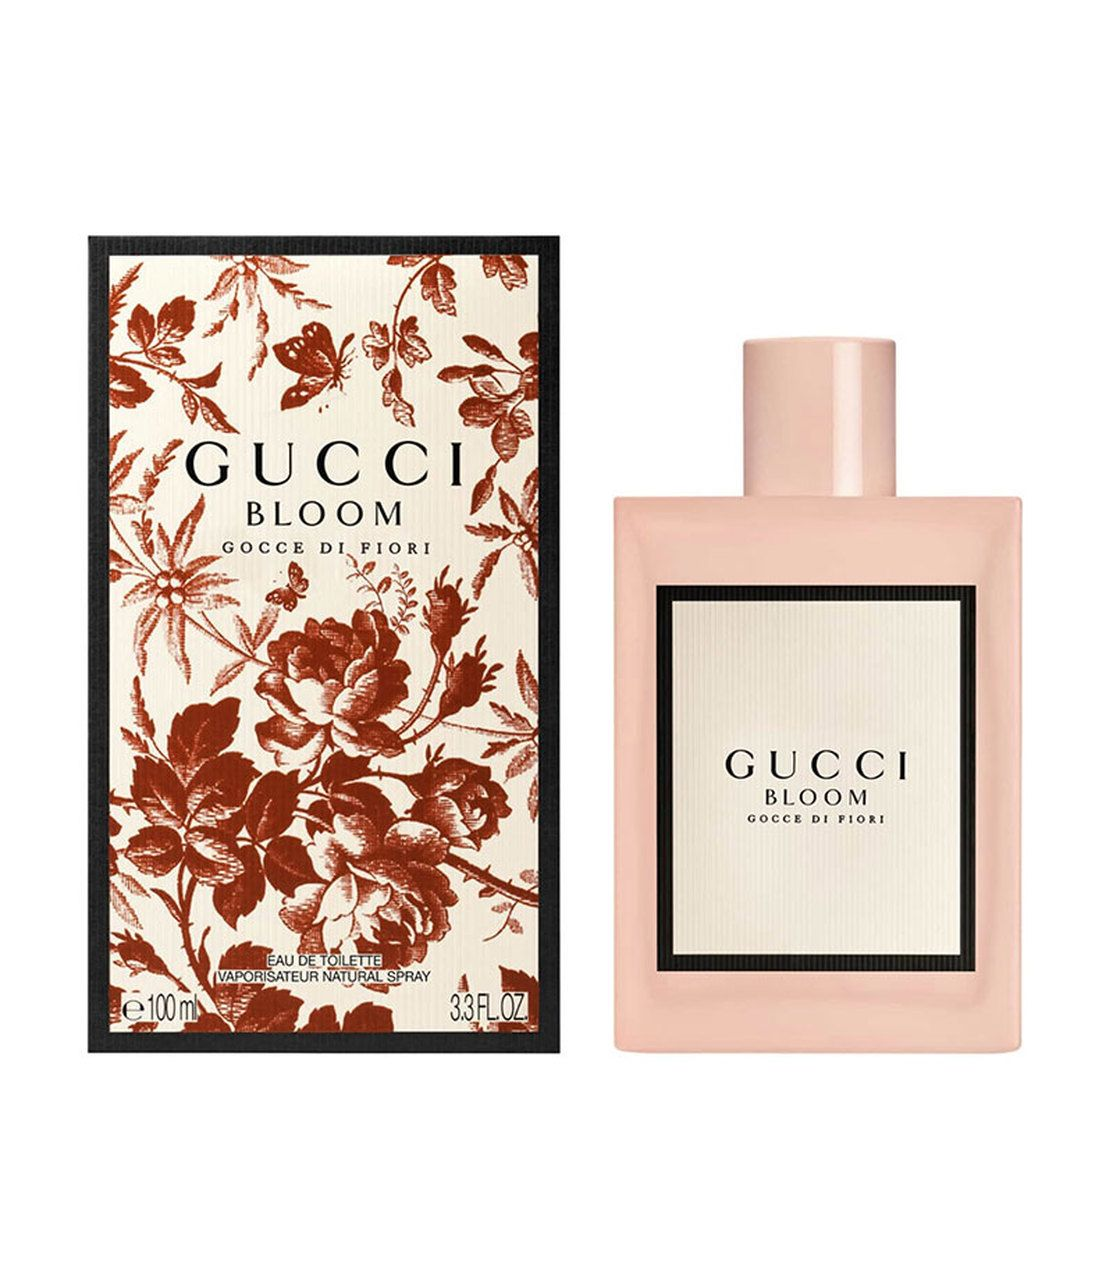 Gucci Bloom Gocce Di Fiori Eau De Toilette Spray 3 3 Oz Gucci Fragrance Women Perfume Luxury Perfume